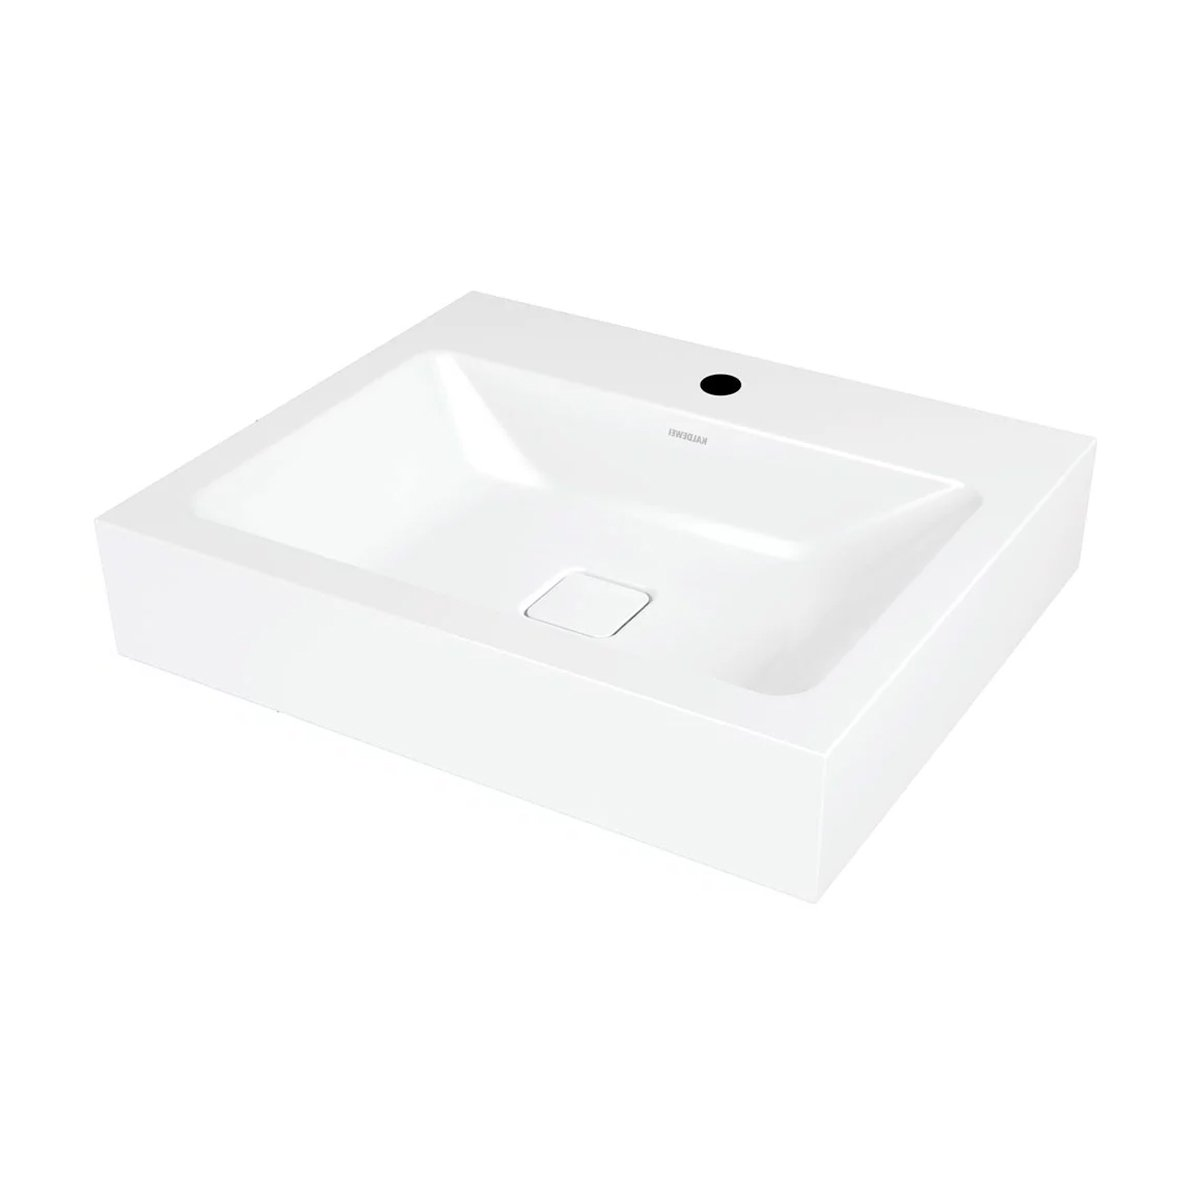 Kaldewei Cono Wall Hung Basin 600mm Wide - 1 Tap Hole